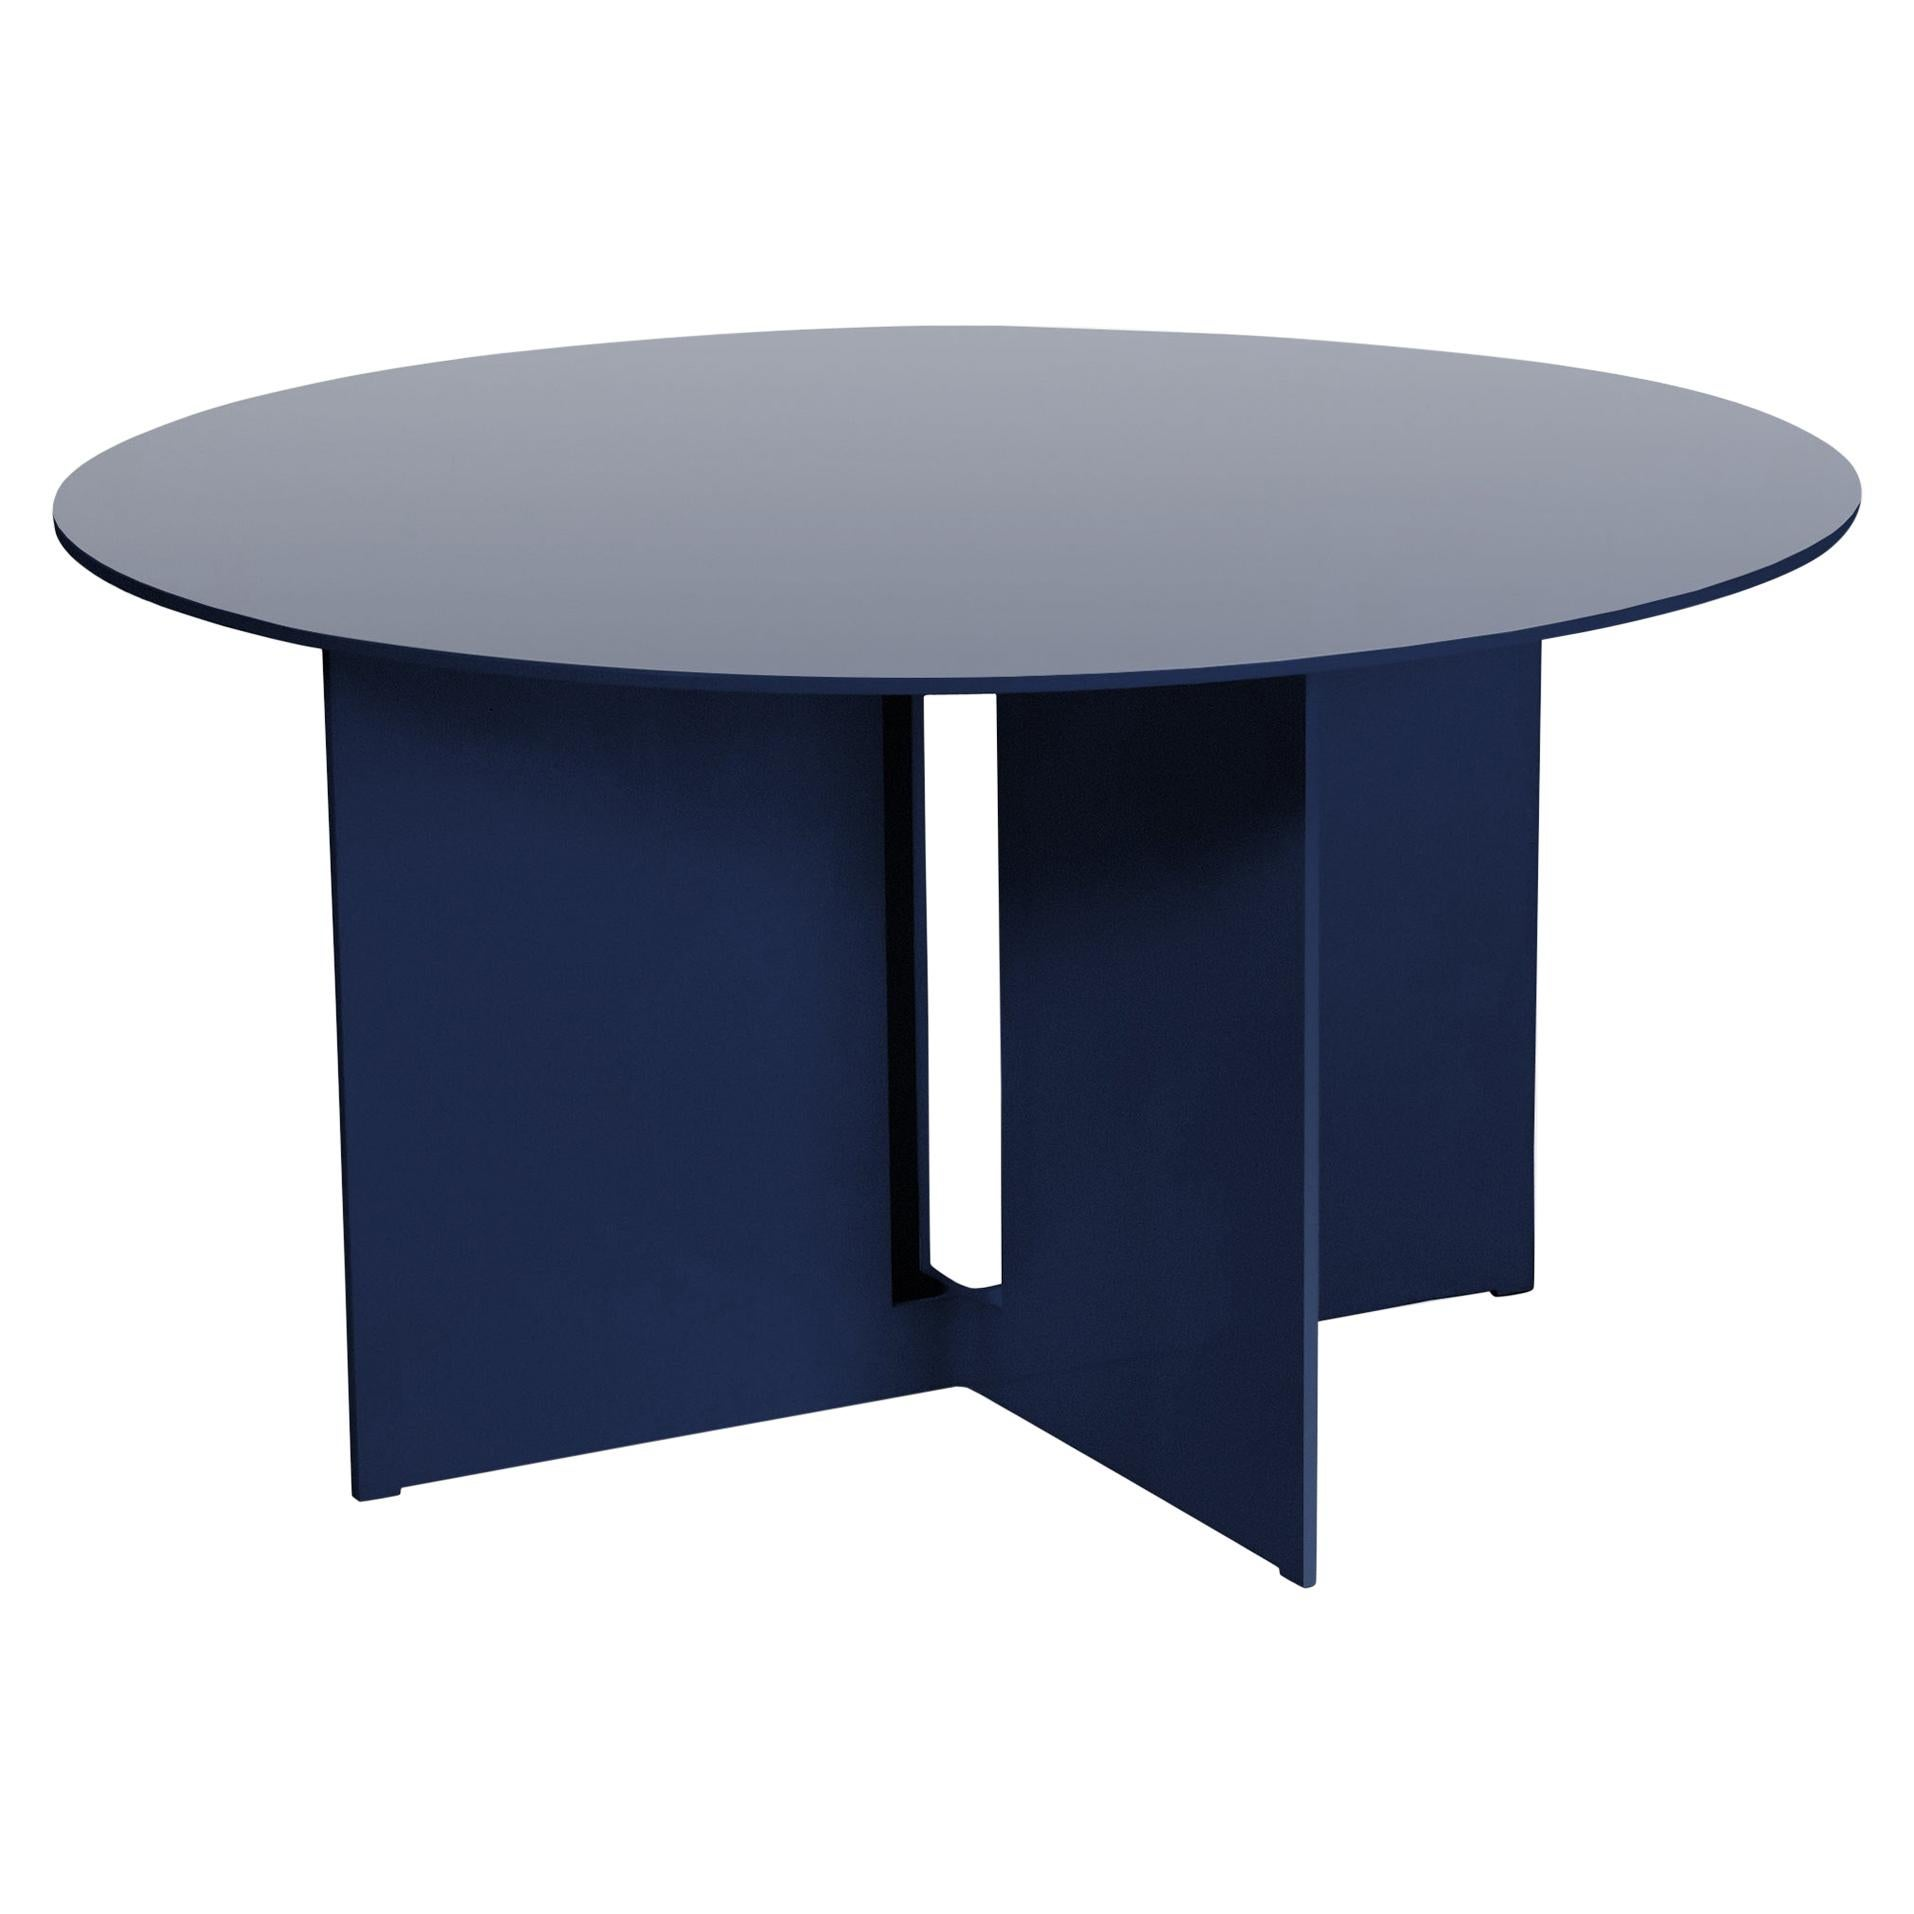 Mers Coffee Table in Aluminum Powdercoat Pacific Blue